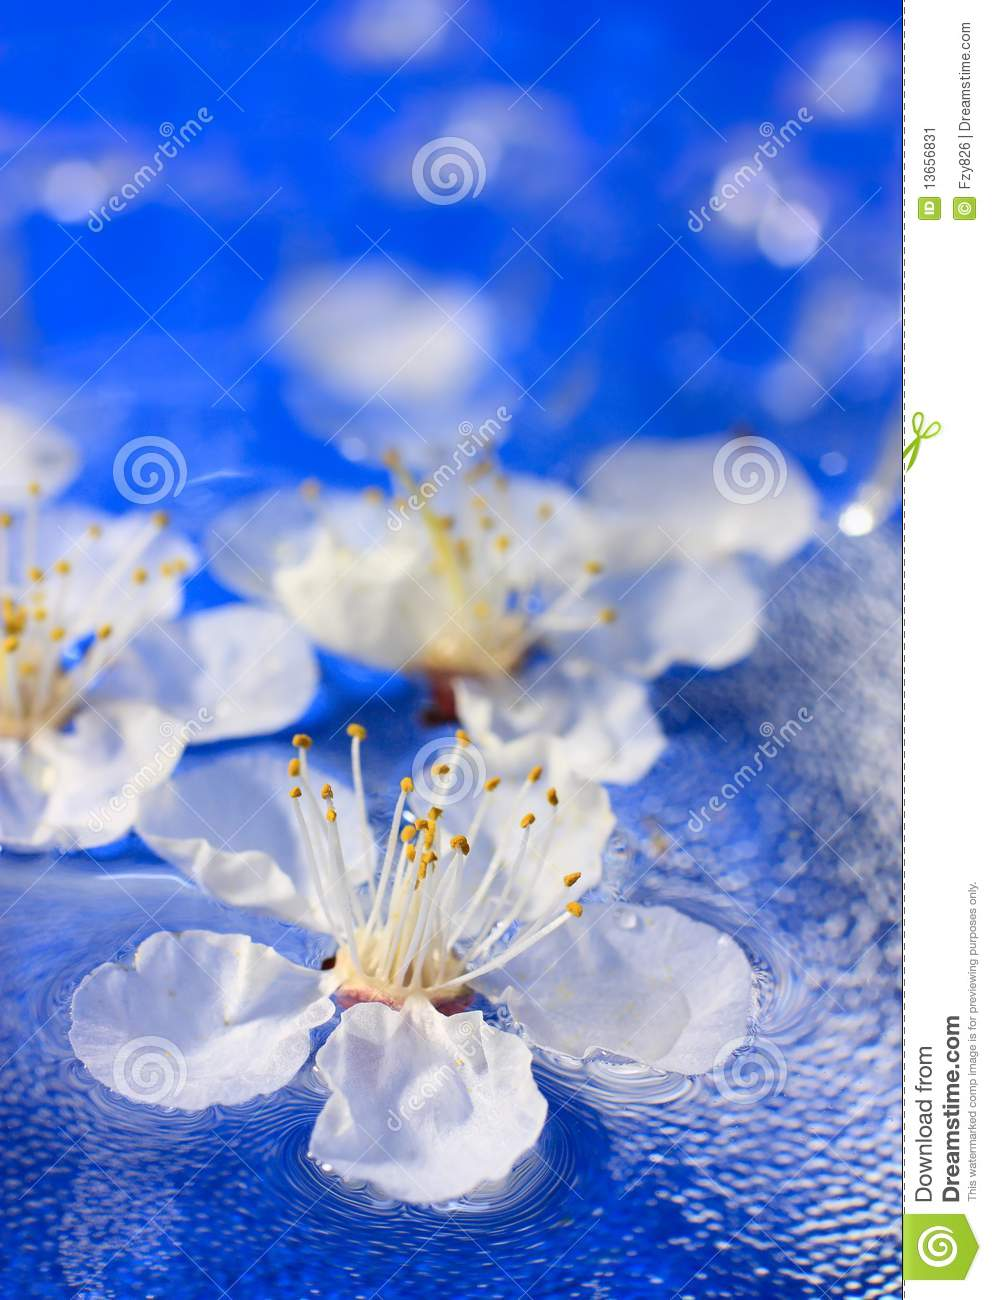 flowers floating in water stock image image 13656831